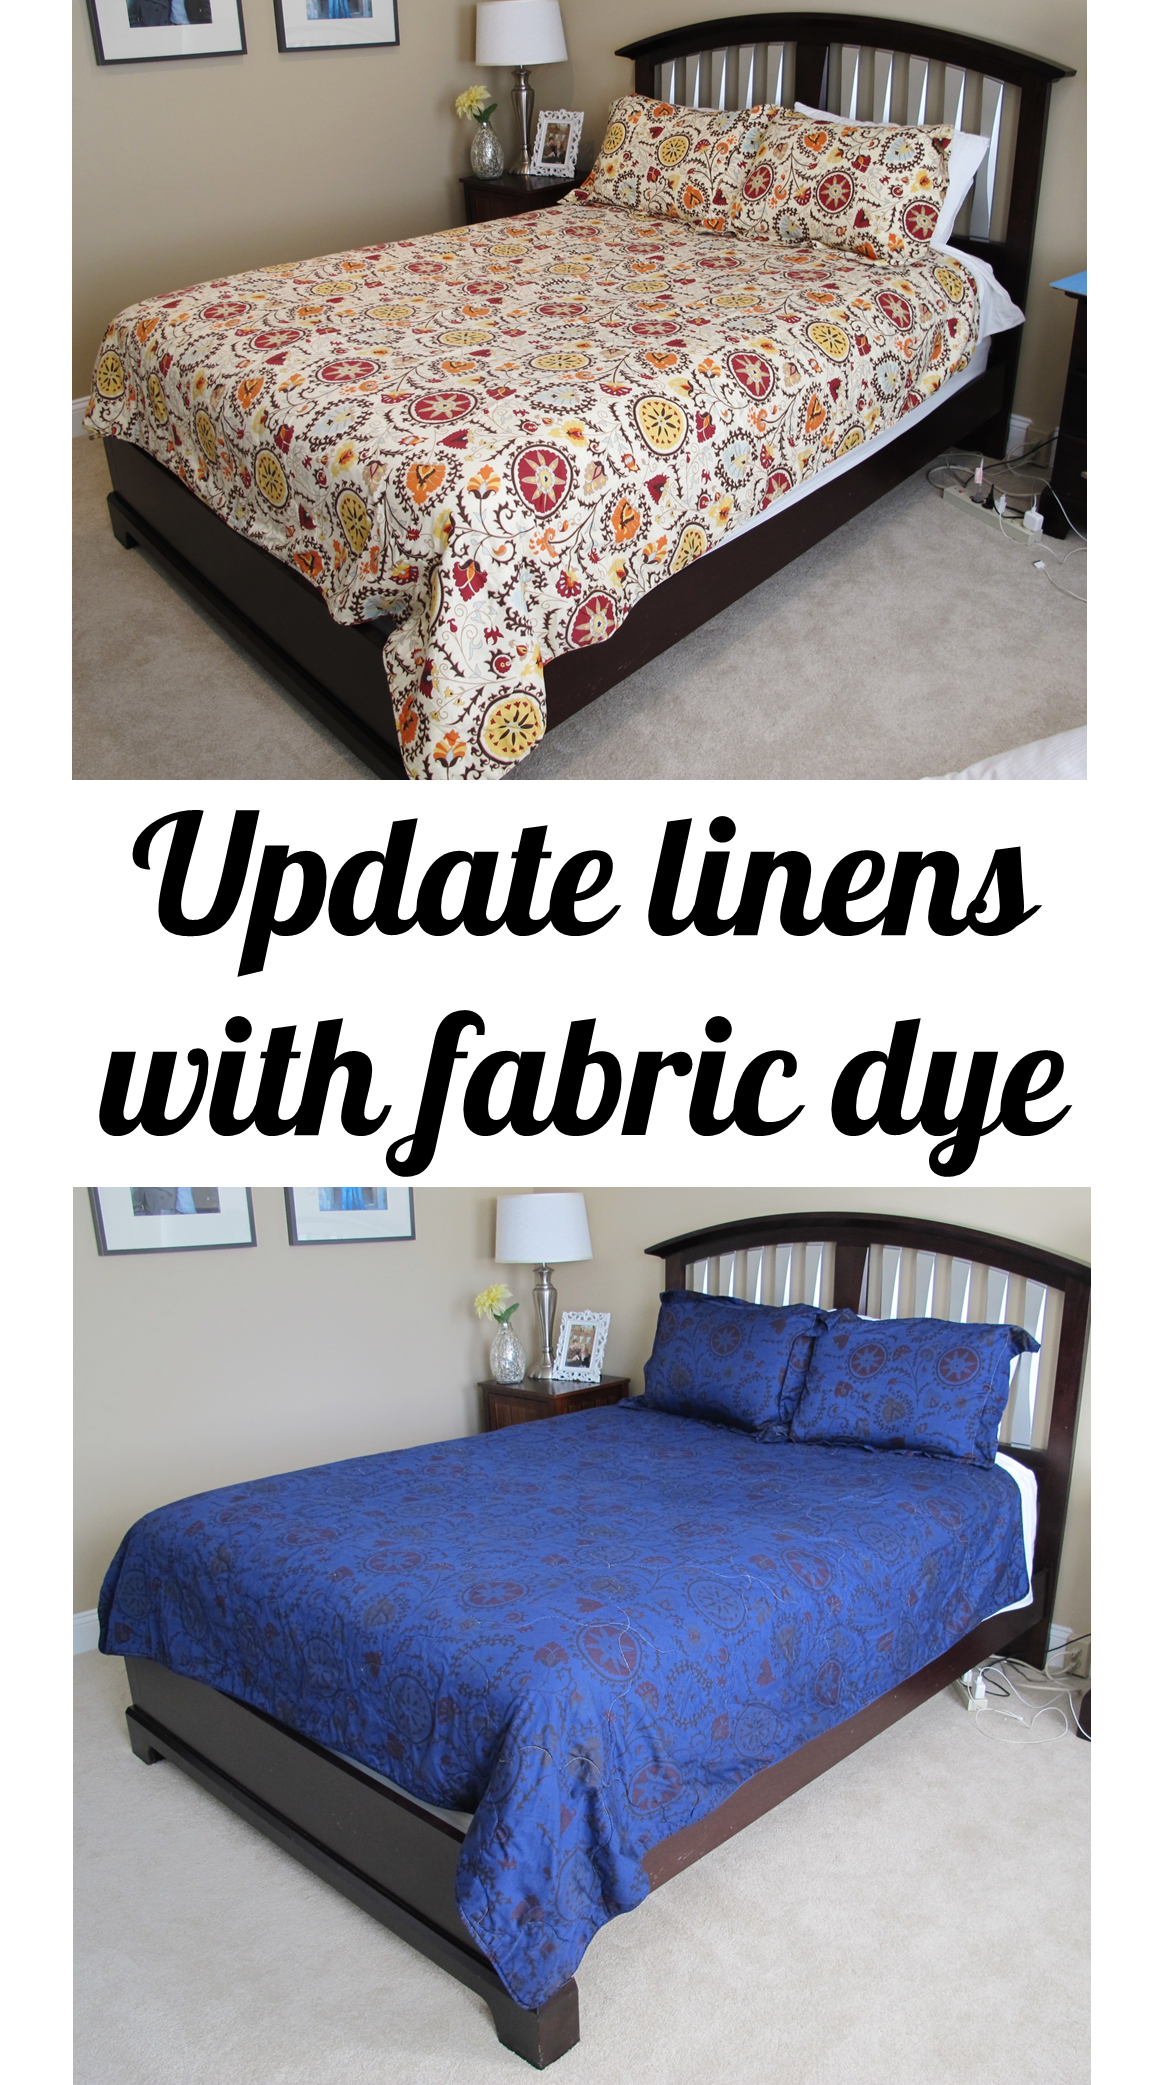 How to Overdye a Bedspread or a New Look | Bonnie Projects for tealandlime.com